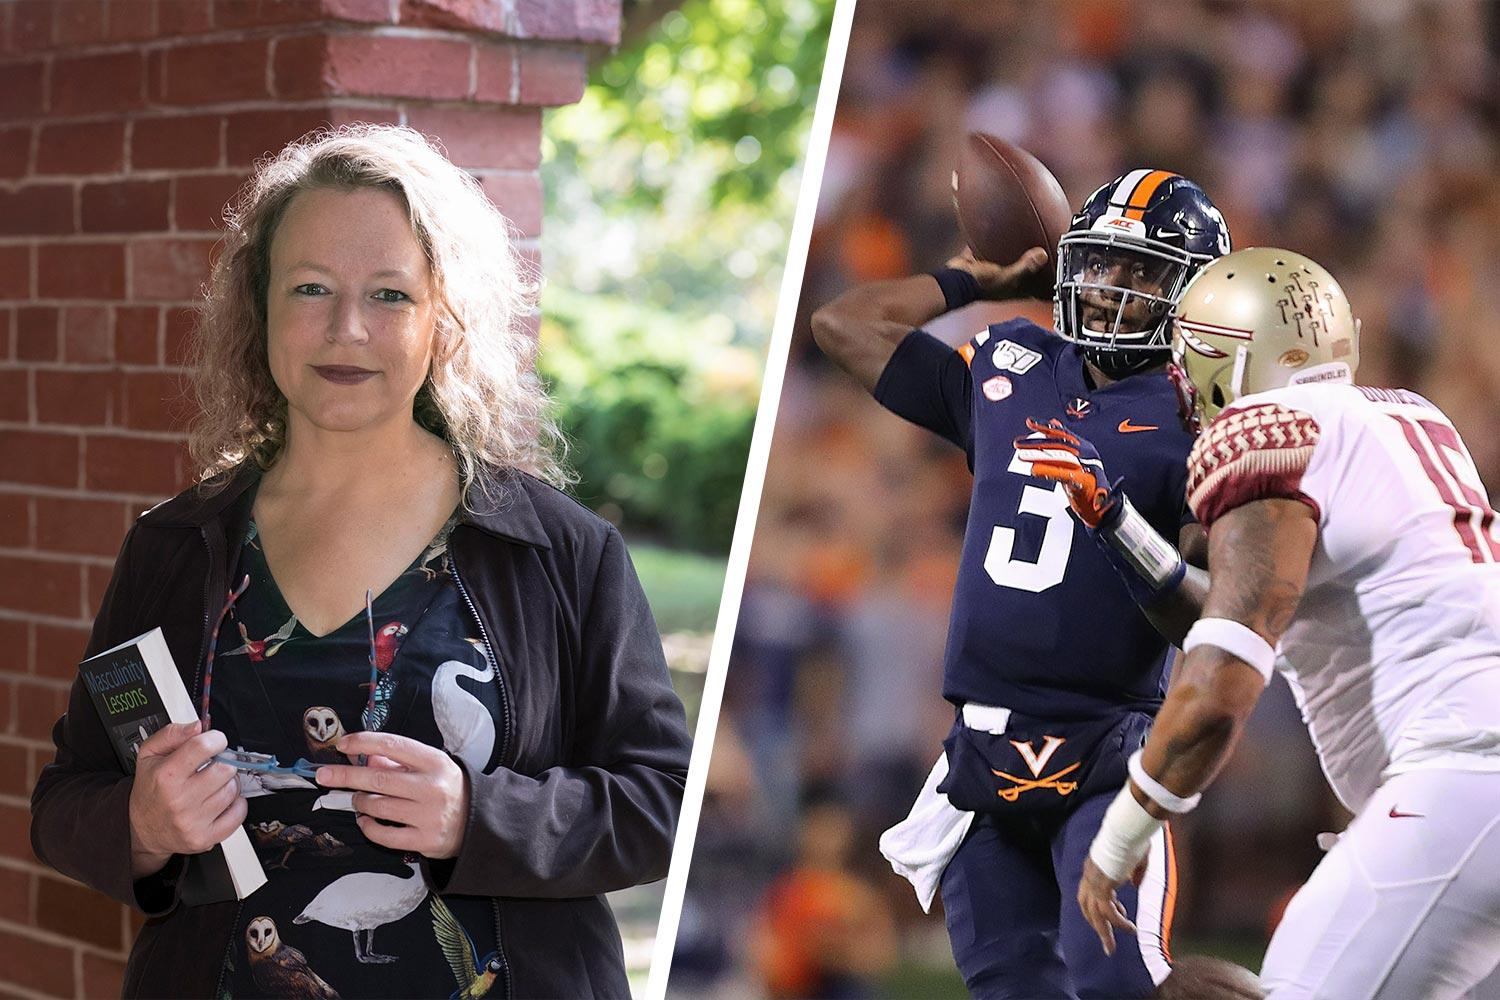 """Lisa Speidel (left) was at a rock concert when Cavaliers football player Bryce Perkins (right) gave her a """"shout-out"""" during Saturday's win over Florida State."""